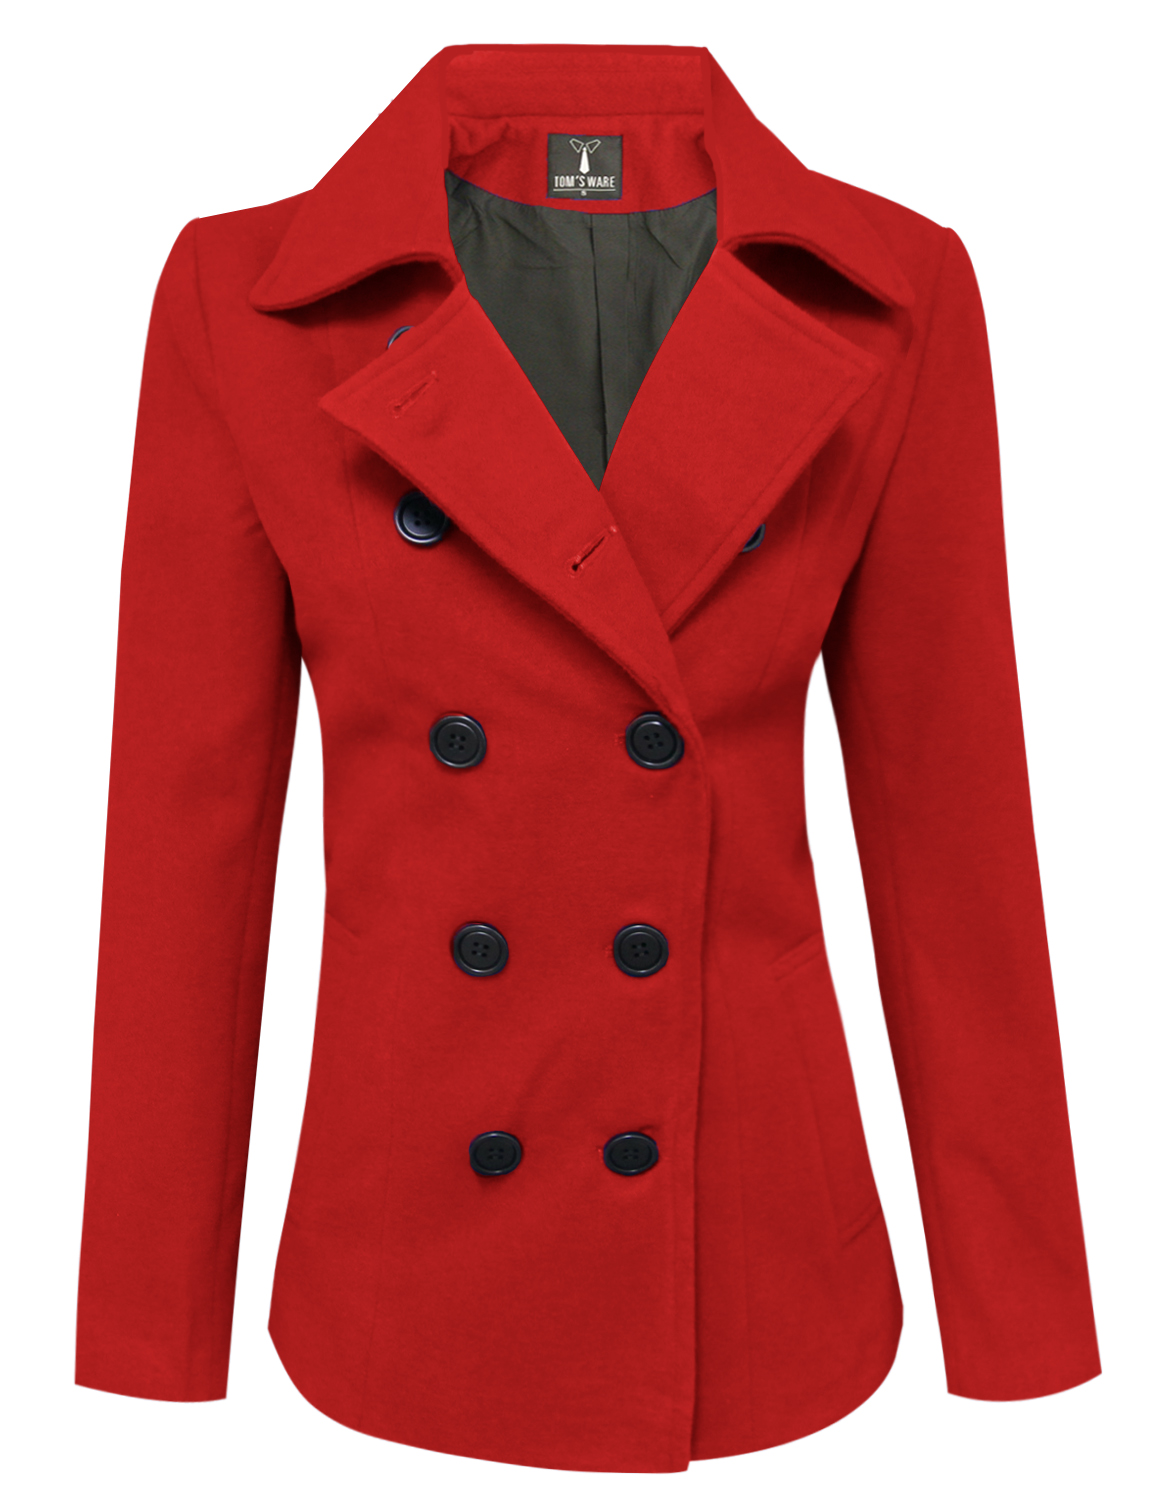 Tom's Ware Womens Trendy Double Breasted Wool Pea Coat by Tom's Ware